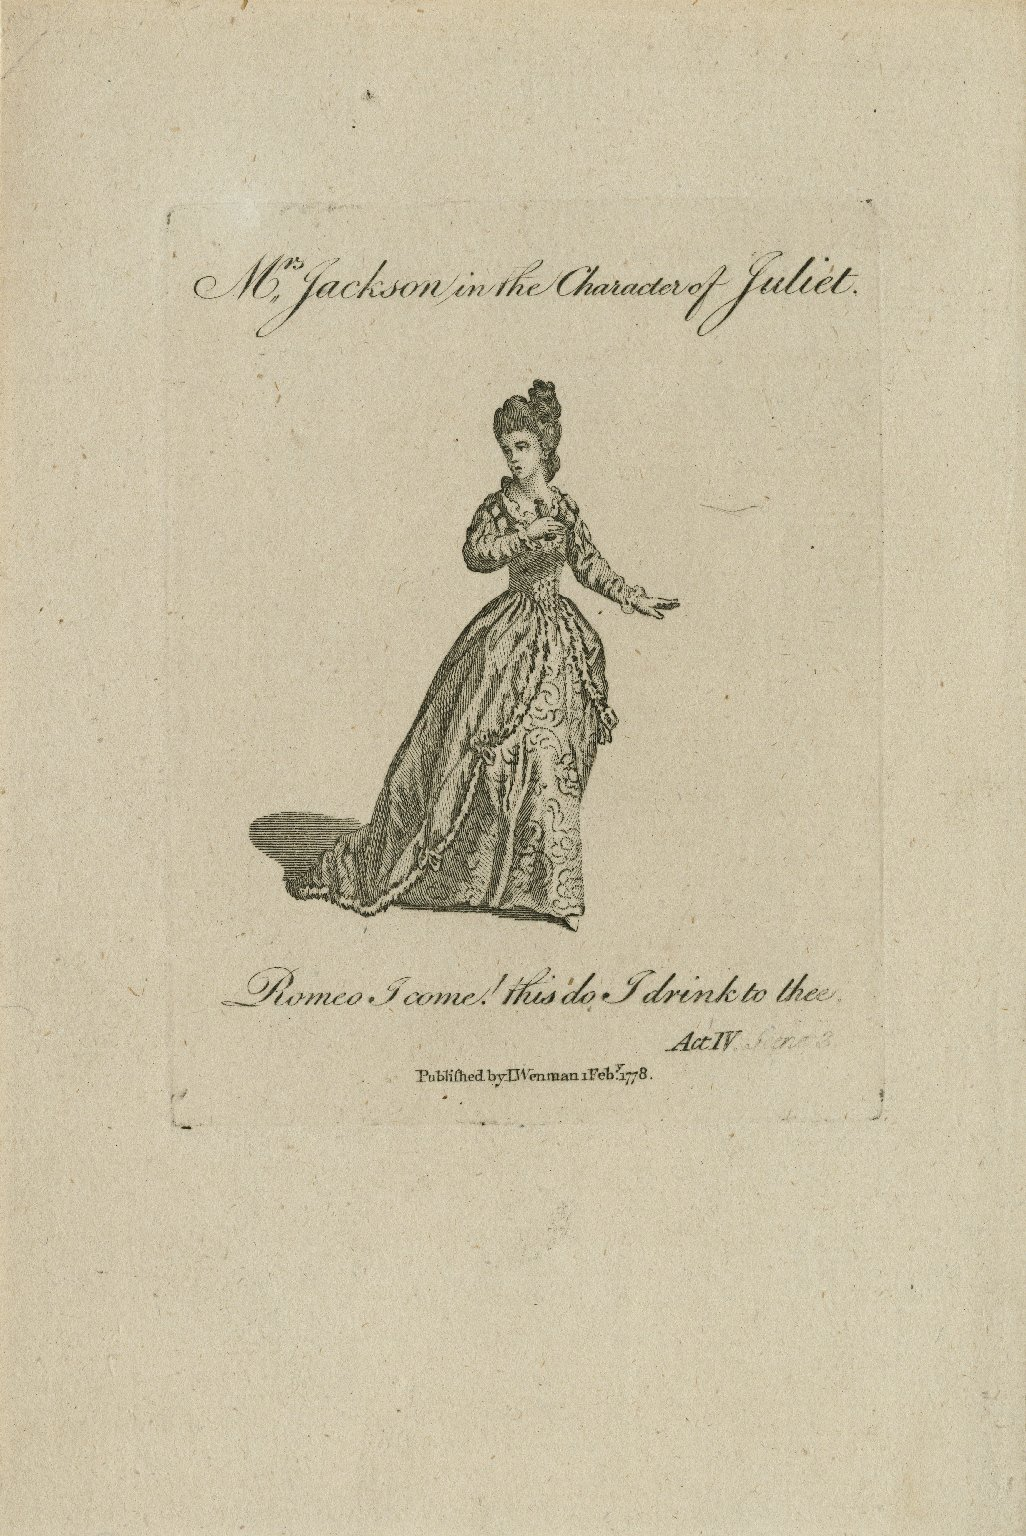 Mrs. Jackson in the character of Juliet ... [in Shakespeare's Romeo and Juliet], act IV, scene 3 [graphic].